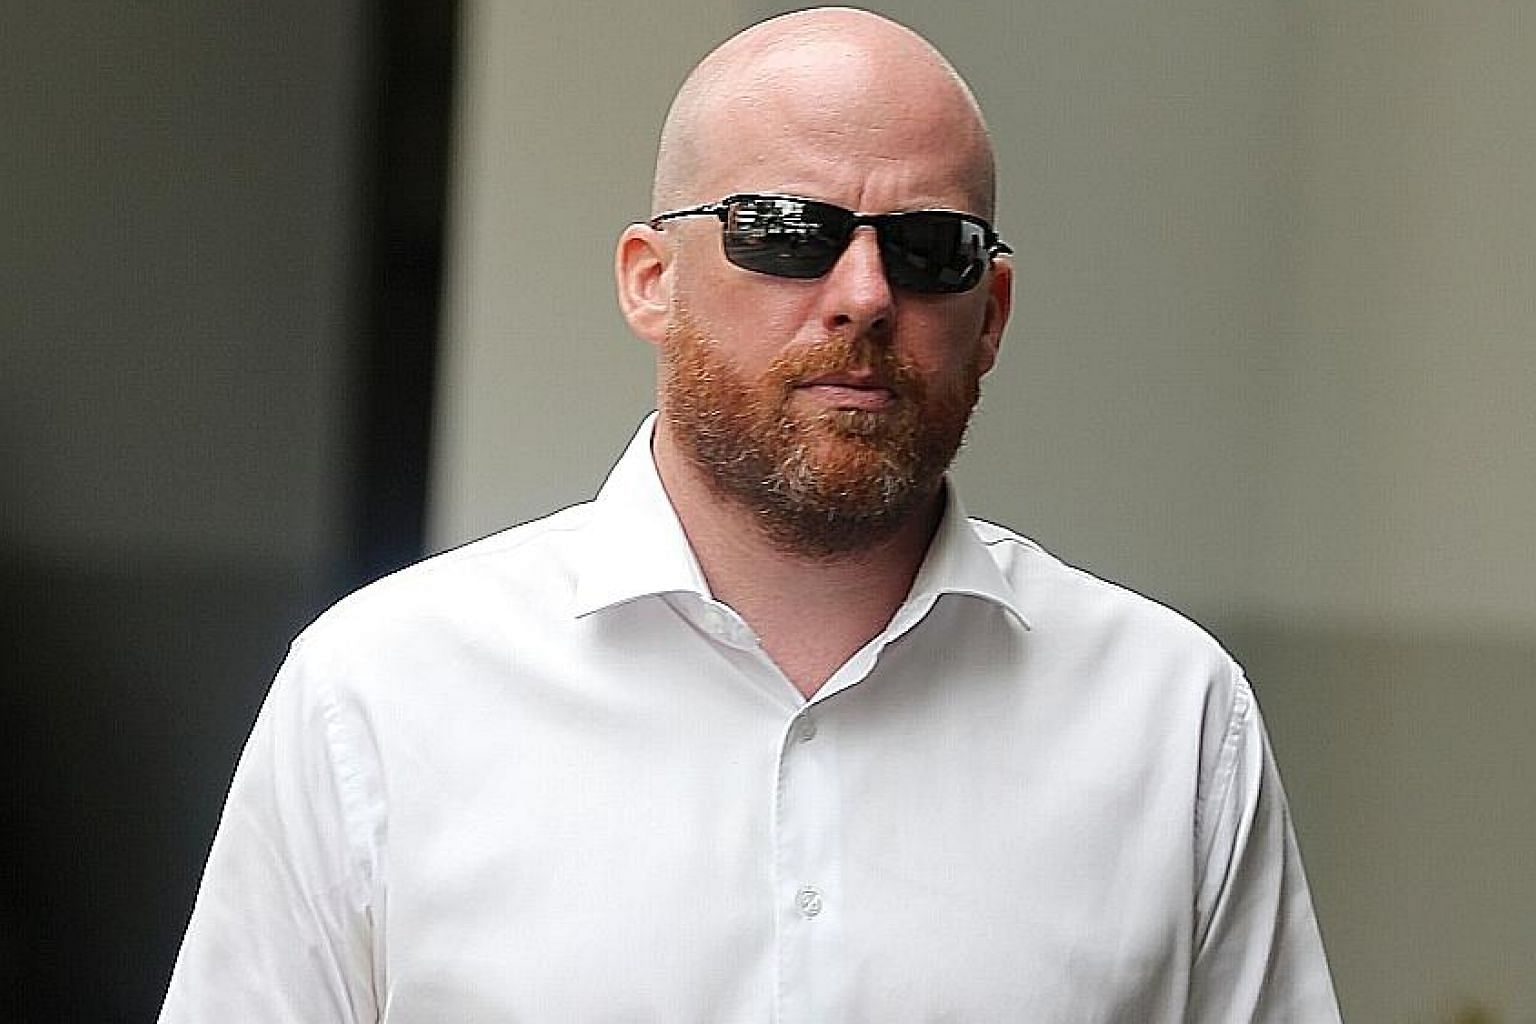 Sturzenegger was accused of lying to police and MAS about his ties to Mr Low, the Malaysian tycoon suspected of being at the centre of alleged money laundering linked to 1MDB.